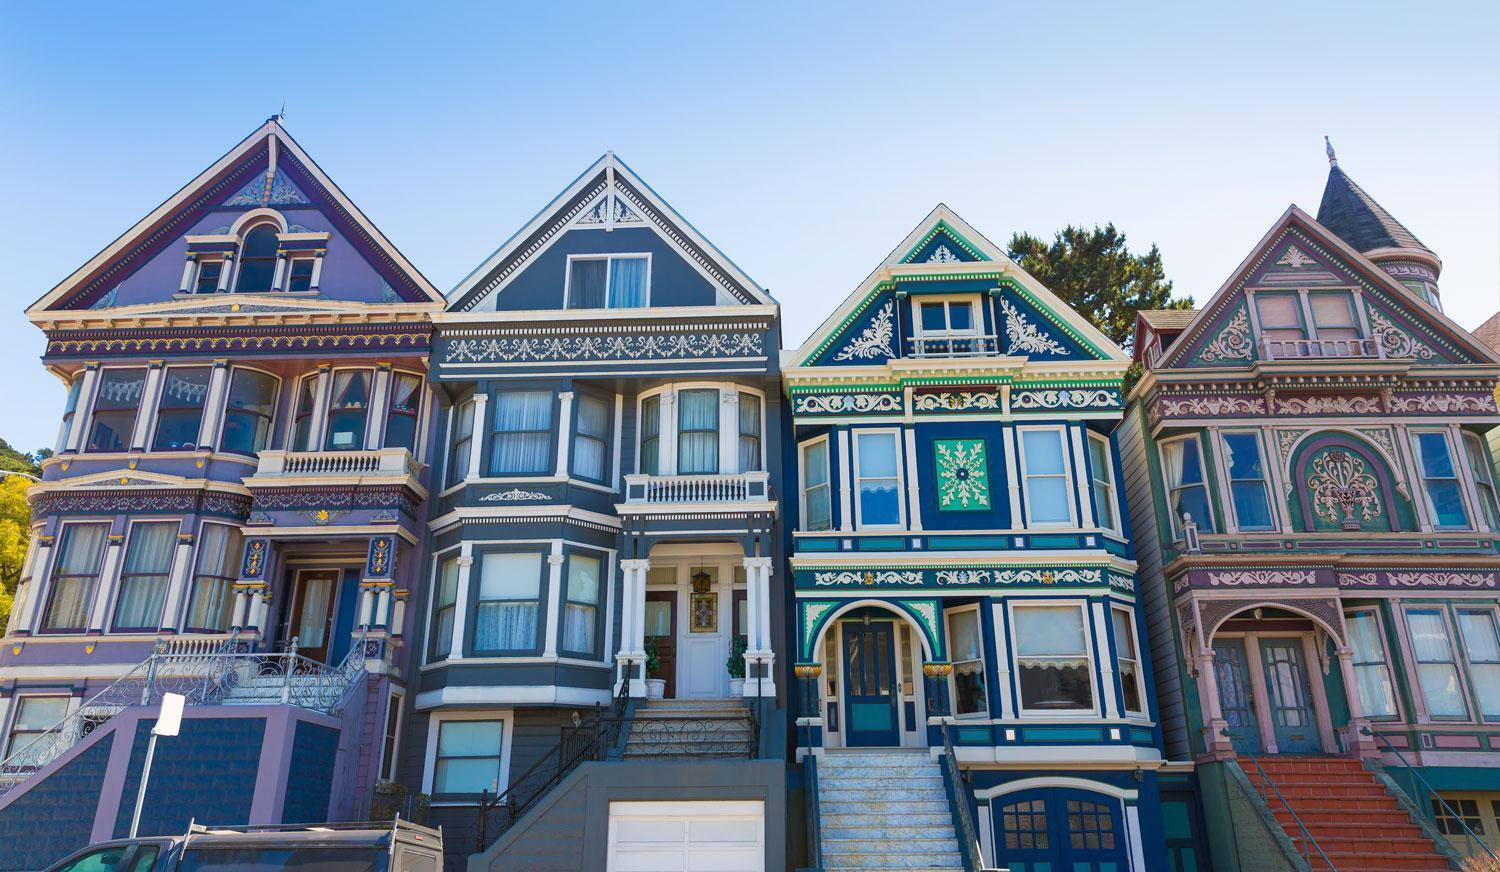 Beautifully restored Victorian homes lining the Panhandle are particularly desirable.